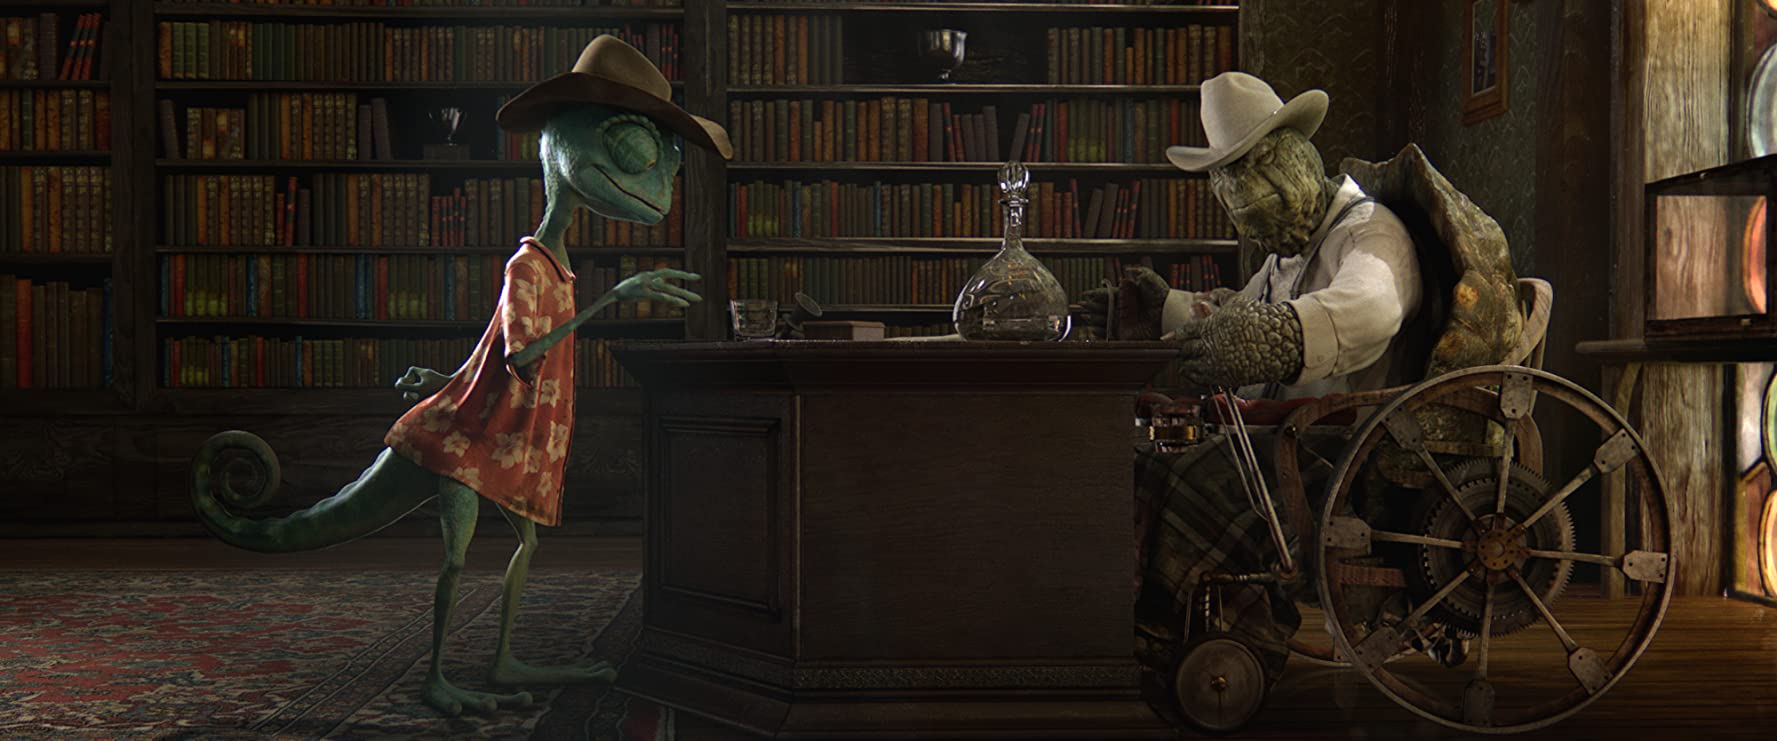 Johnny Depp and Ned Beatty in Rango (2011)